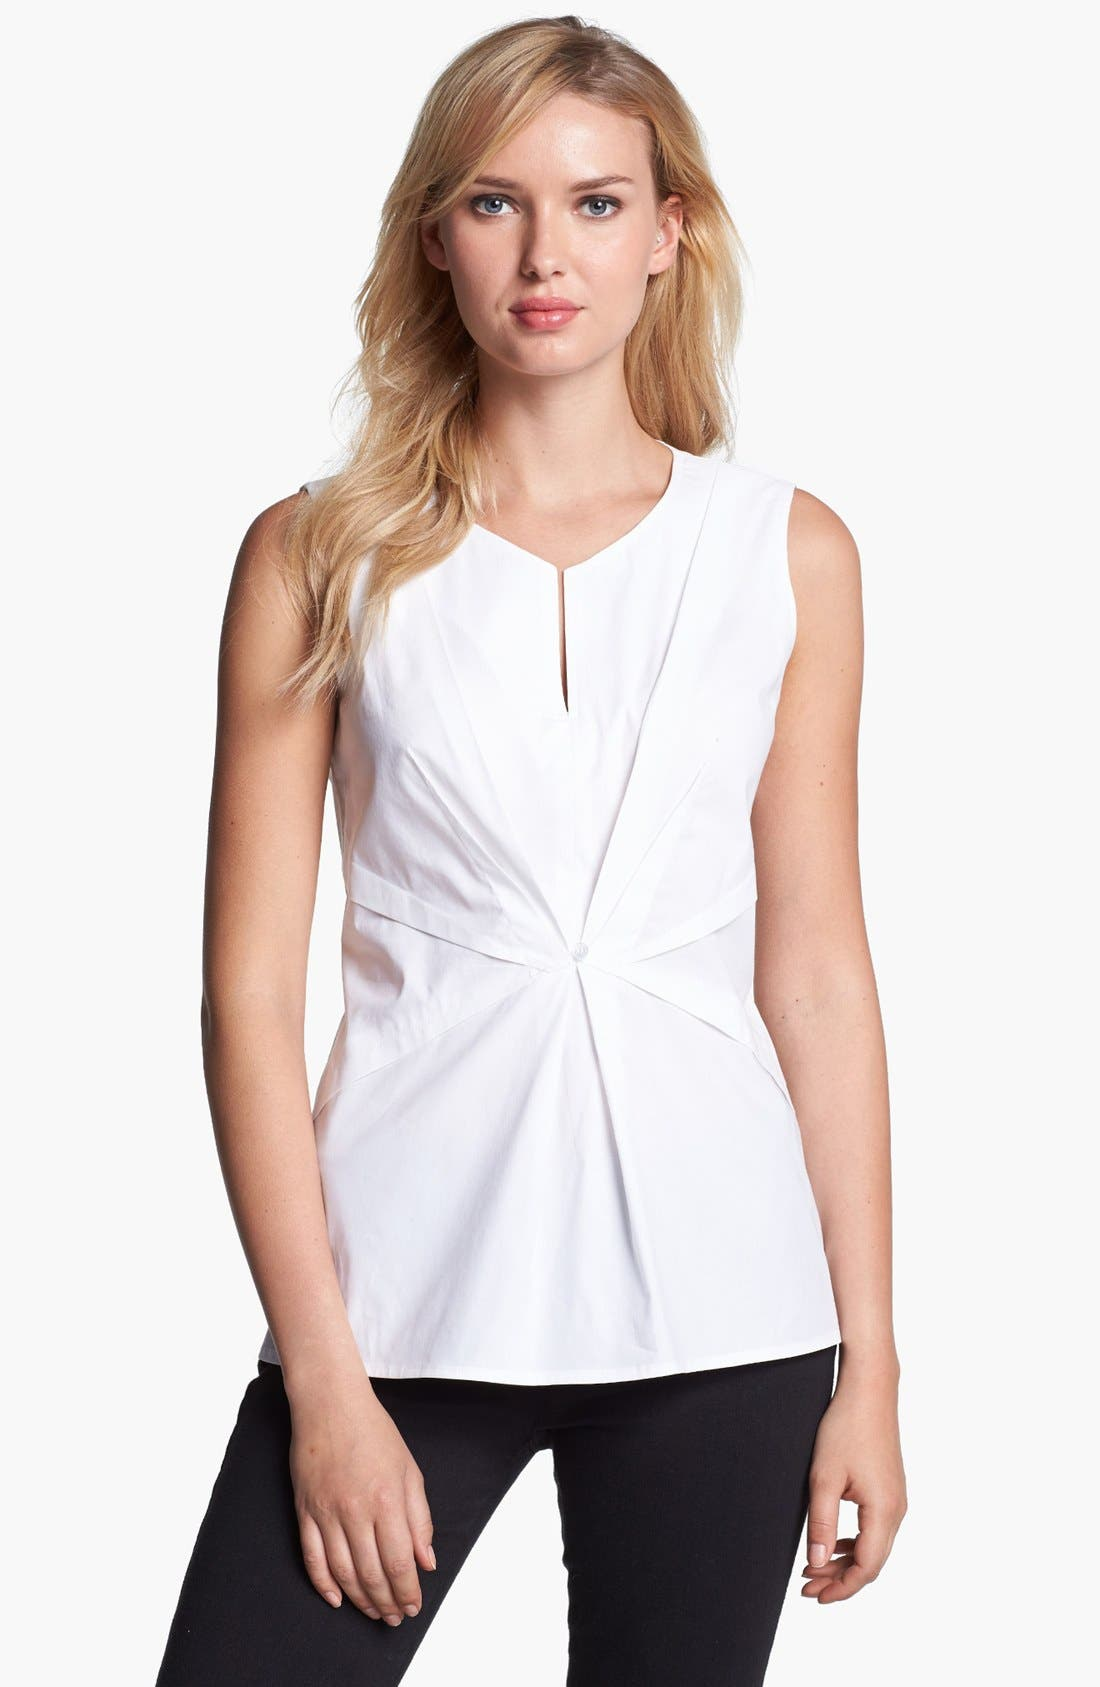 Alternate Image 1 Selected - Finley 'Ashley' Sleeveless Blouse